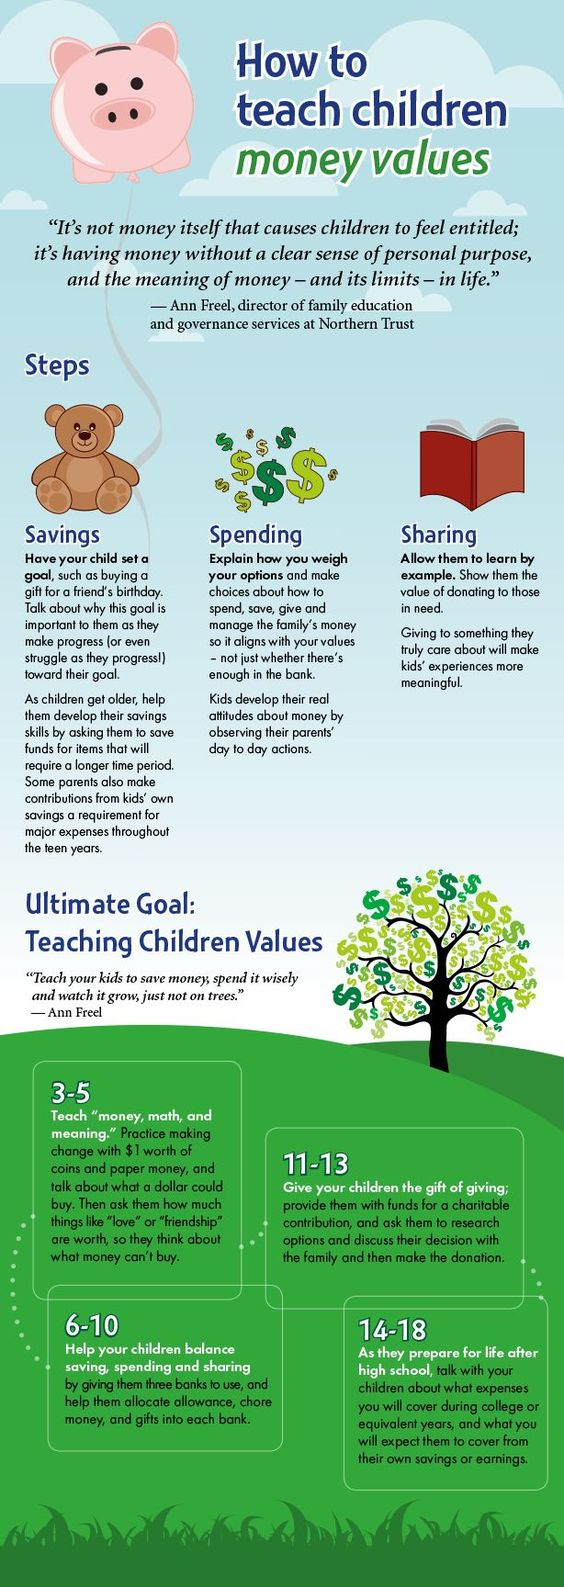 When teaching kids money values, it's important to remember the 3 S's: spending, saving & sharing. Get more tips in our new infographic.